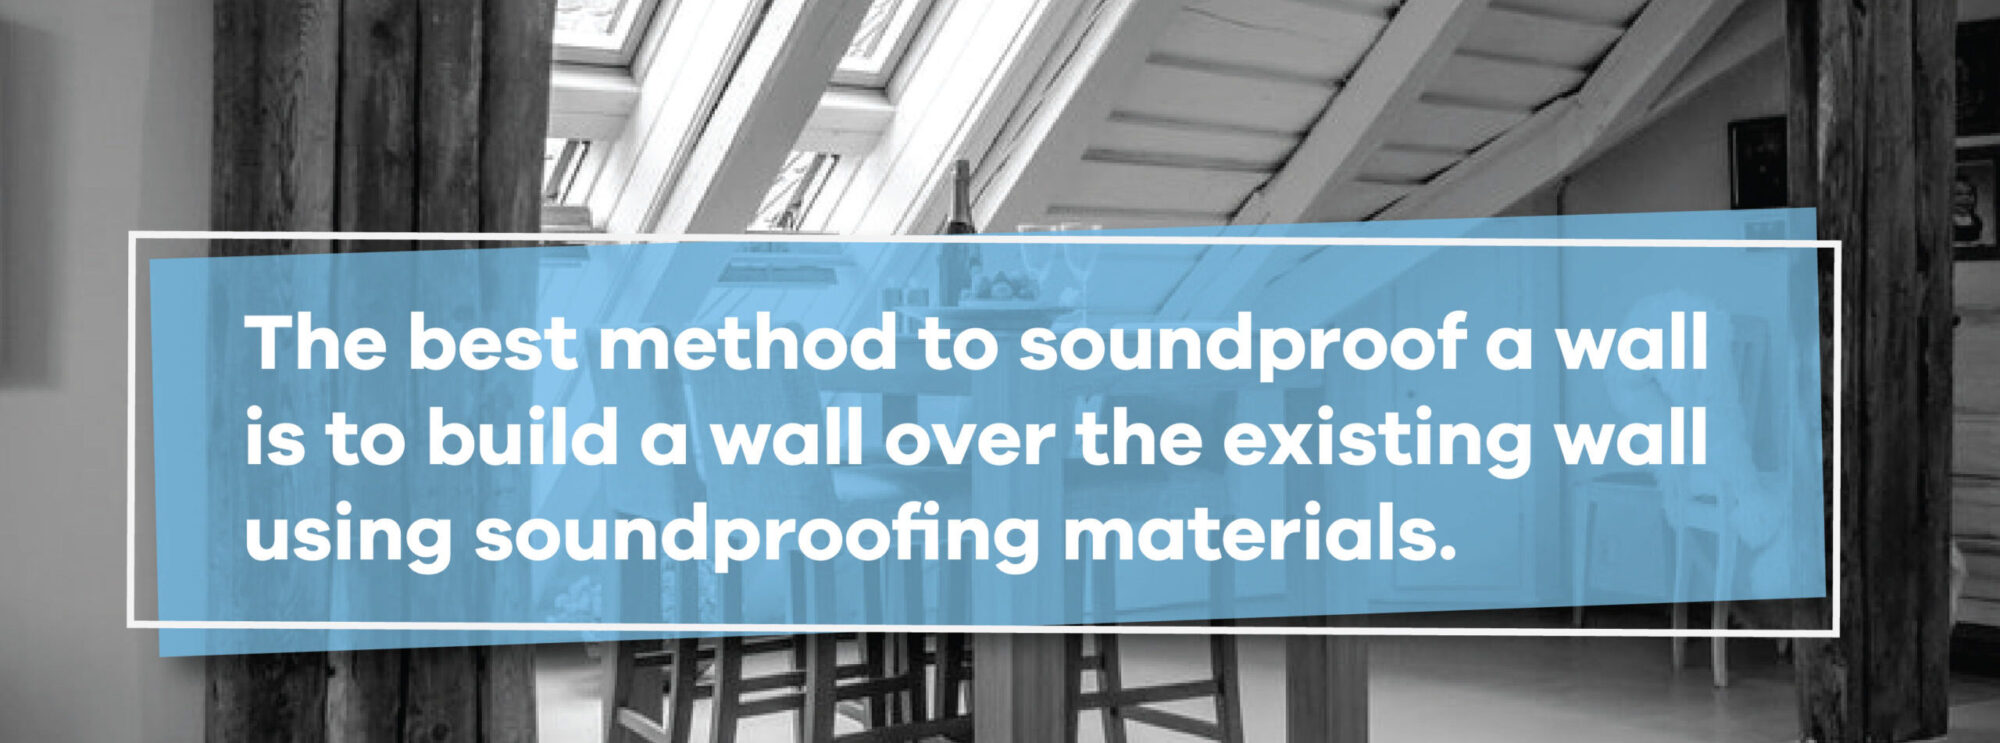 soundproofing an existing wall